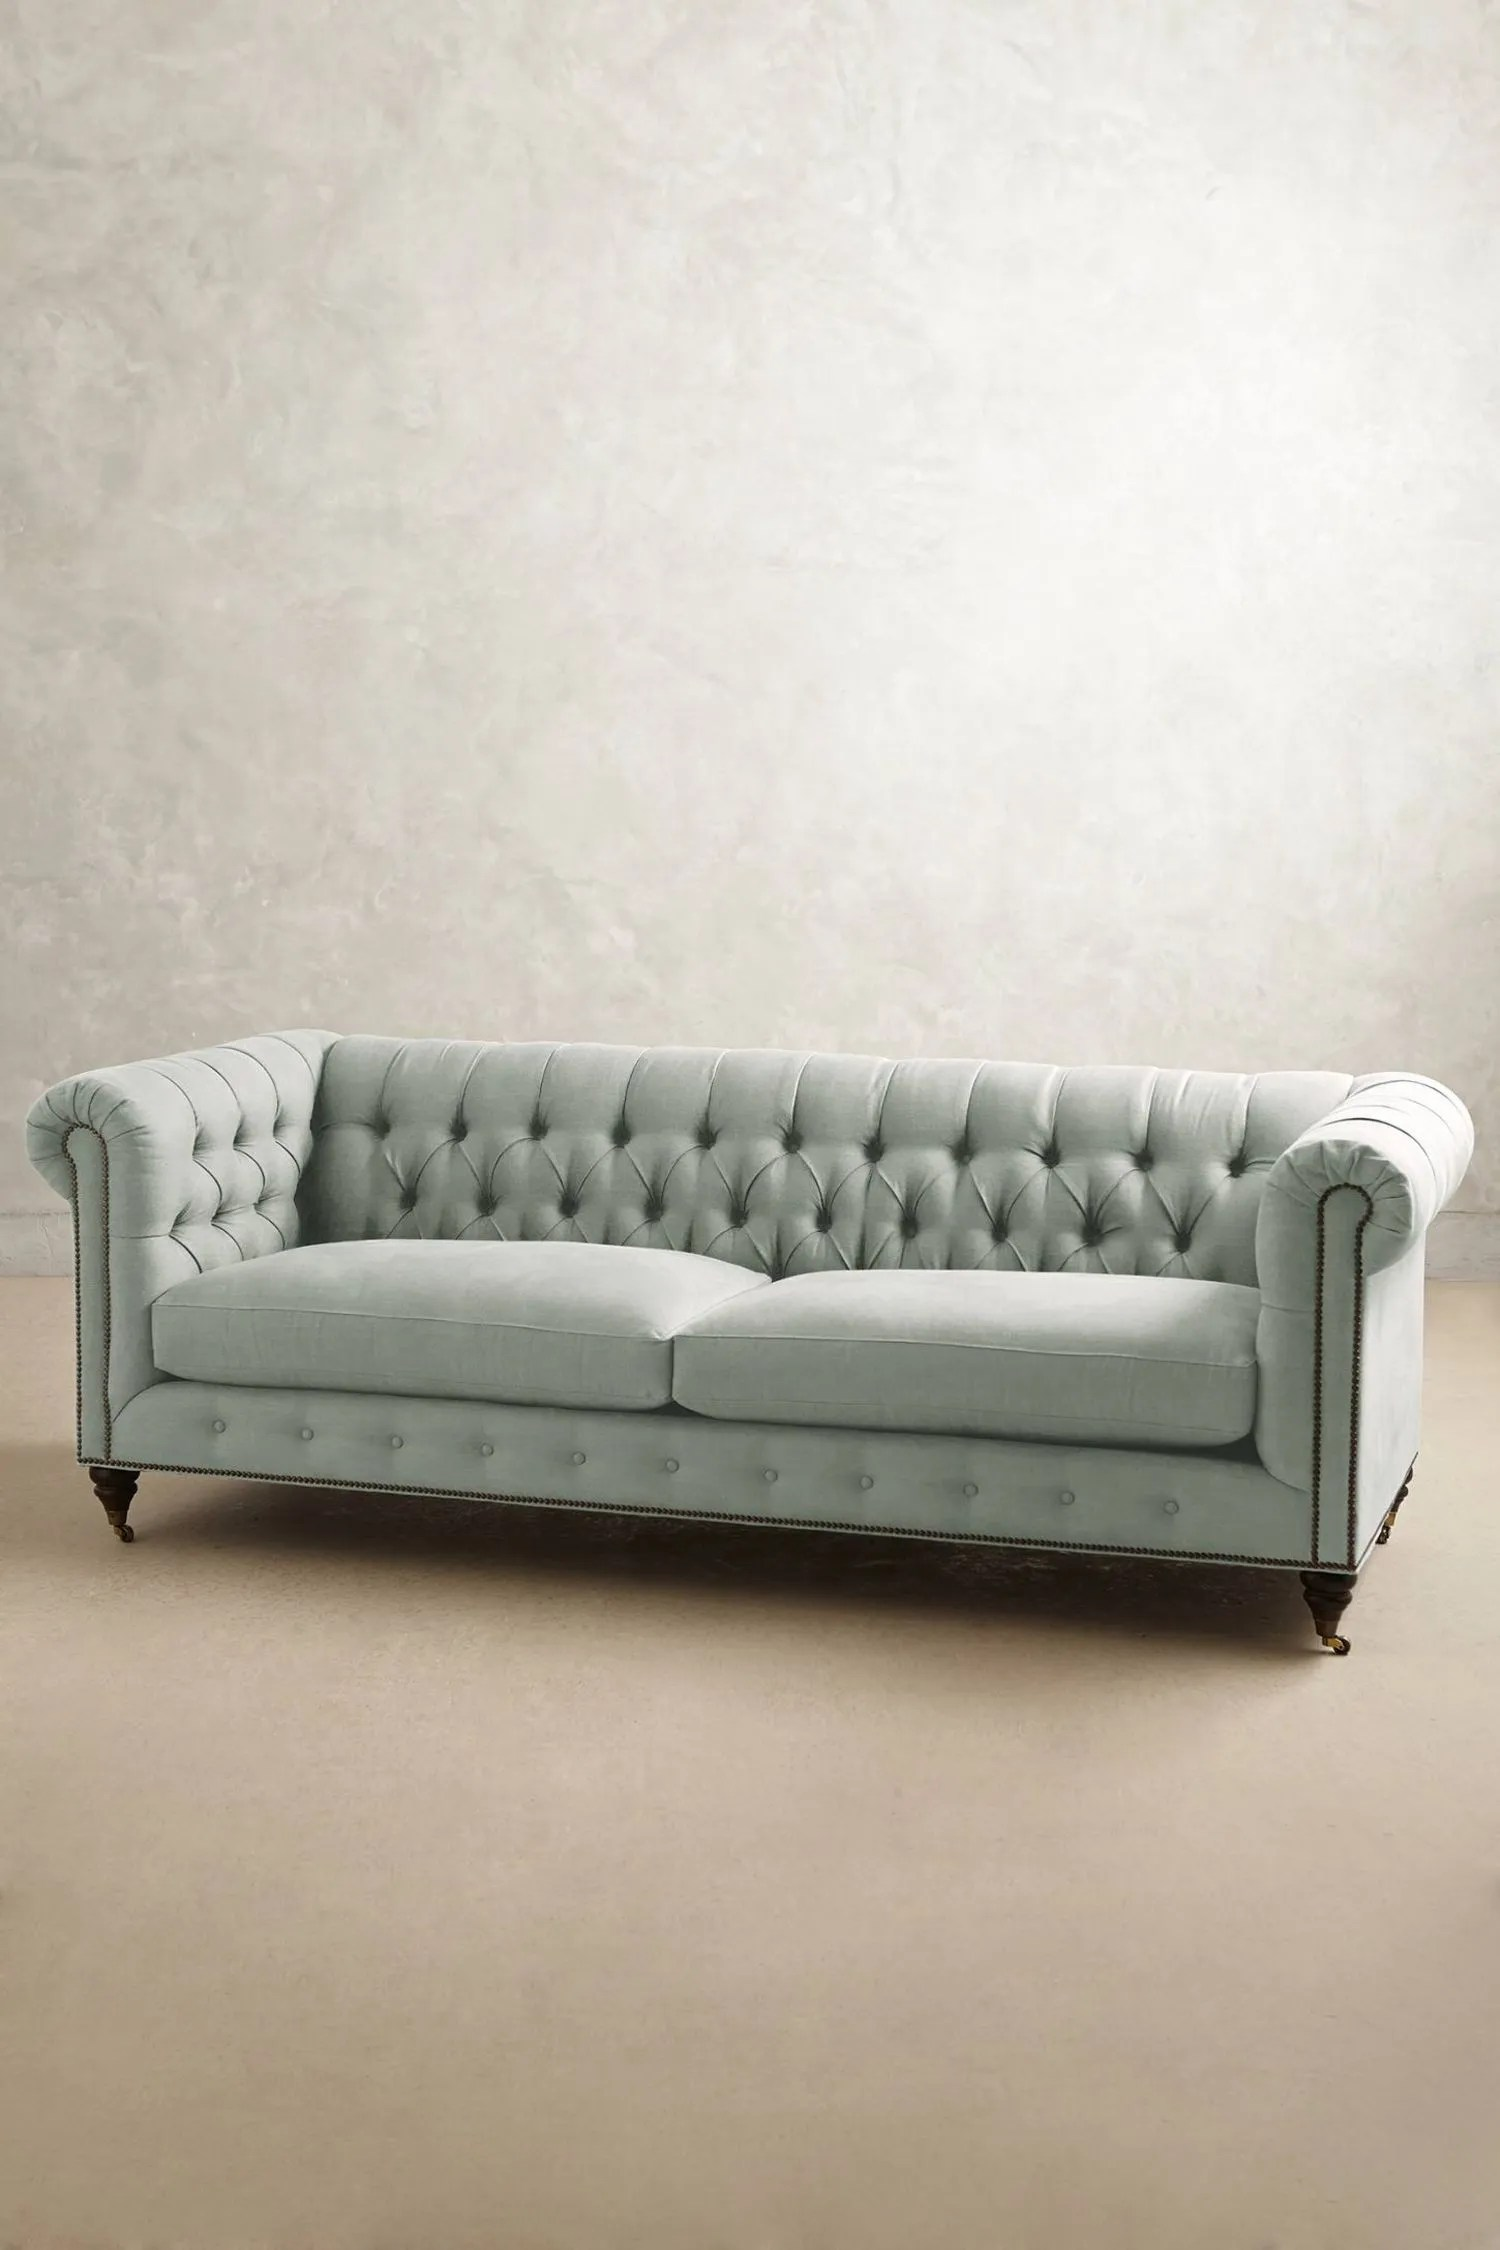 moss green velvet chesterfield sofa cheap sofas glasgow these are the everyone 39s going to be